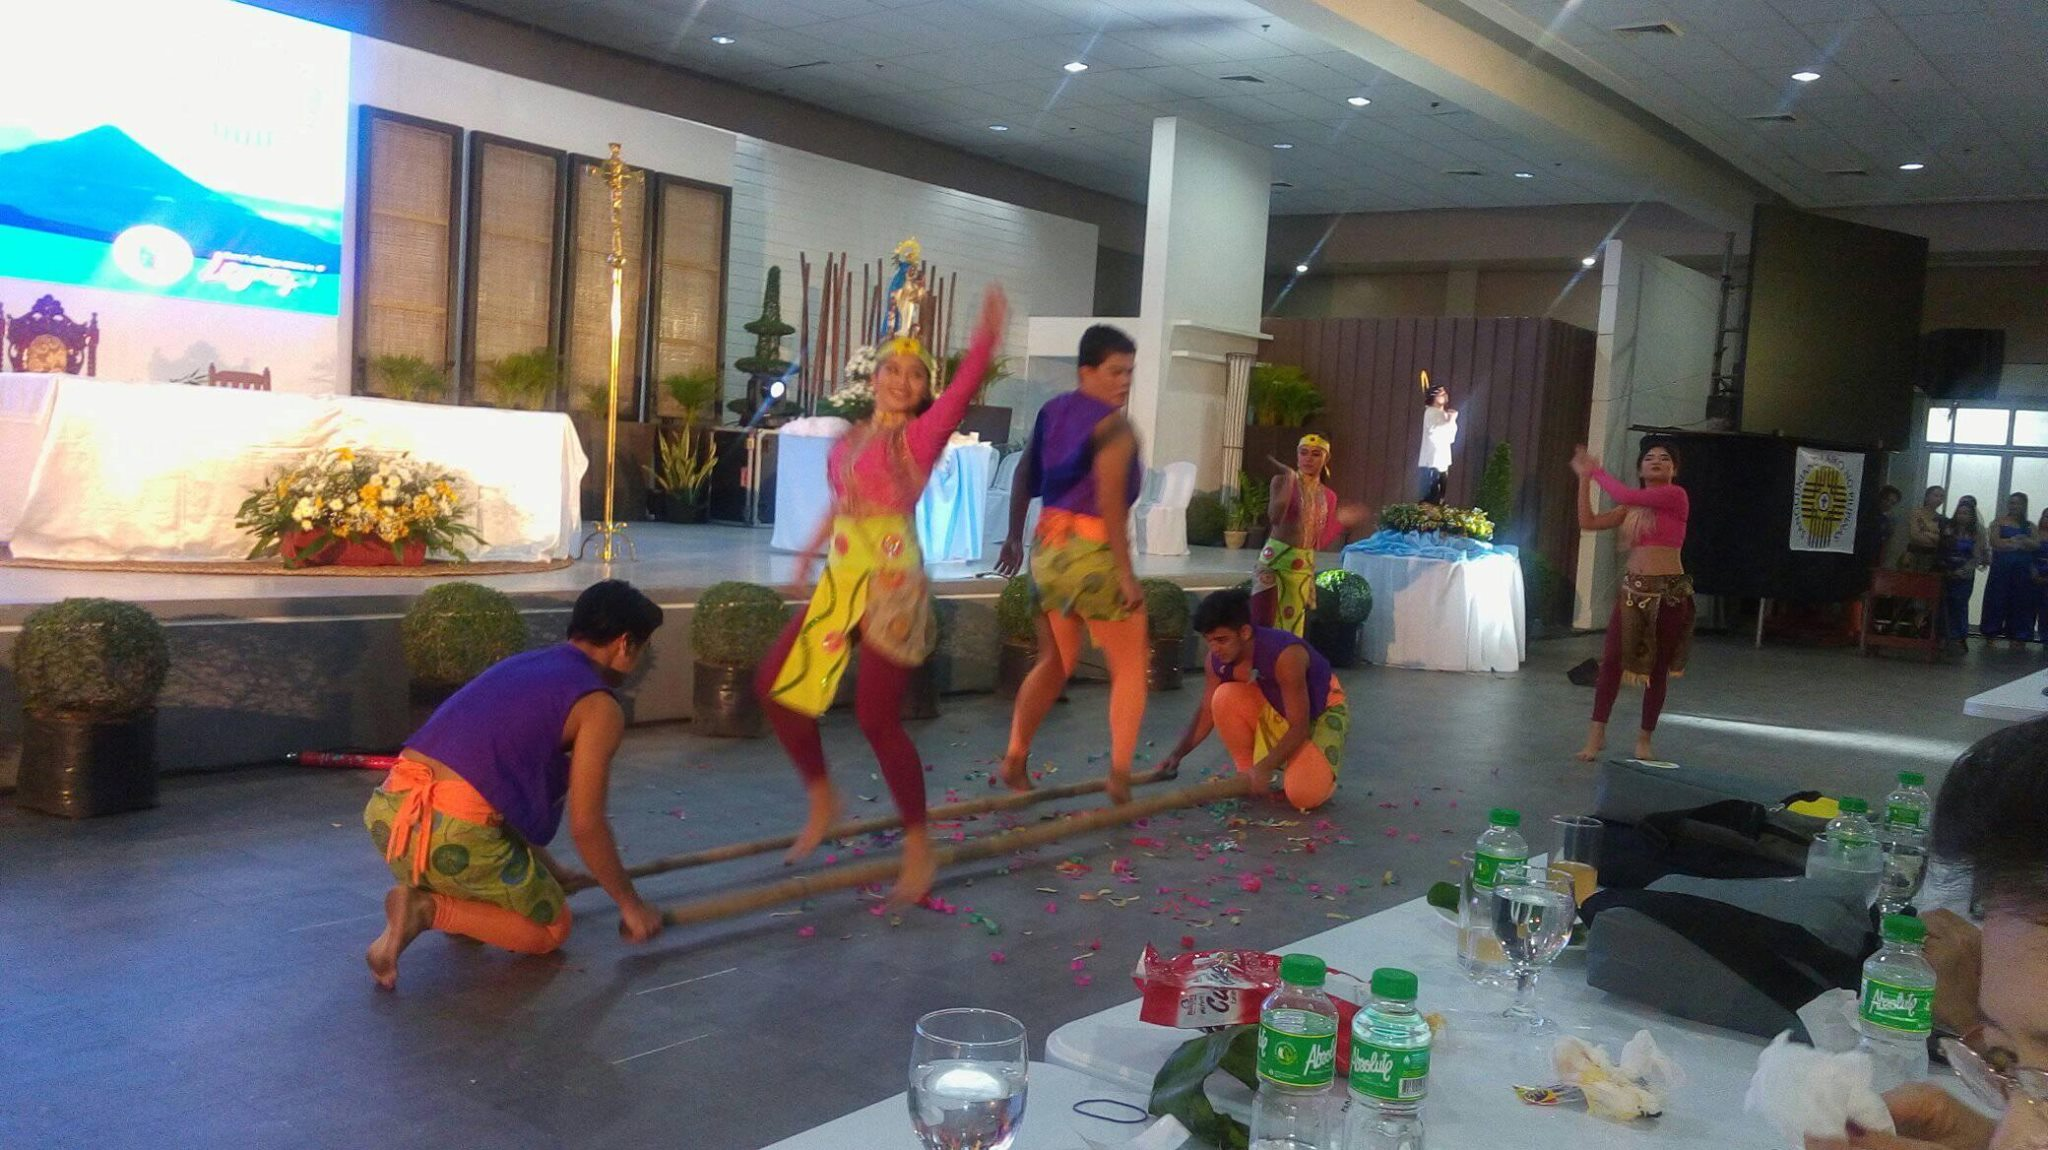 Ibalon dance performed during the Welcome dinner for Sangguniang Laiko delegates to the 2017 Biennial National Convention in Legazpi City